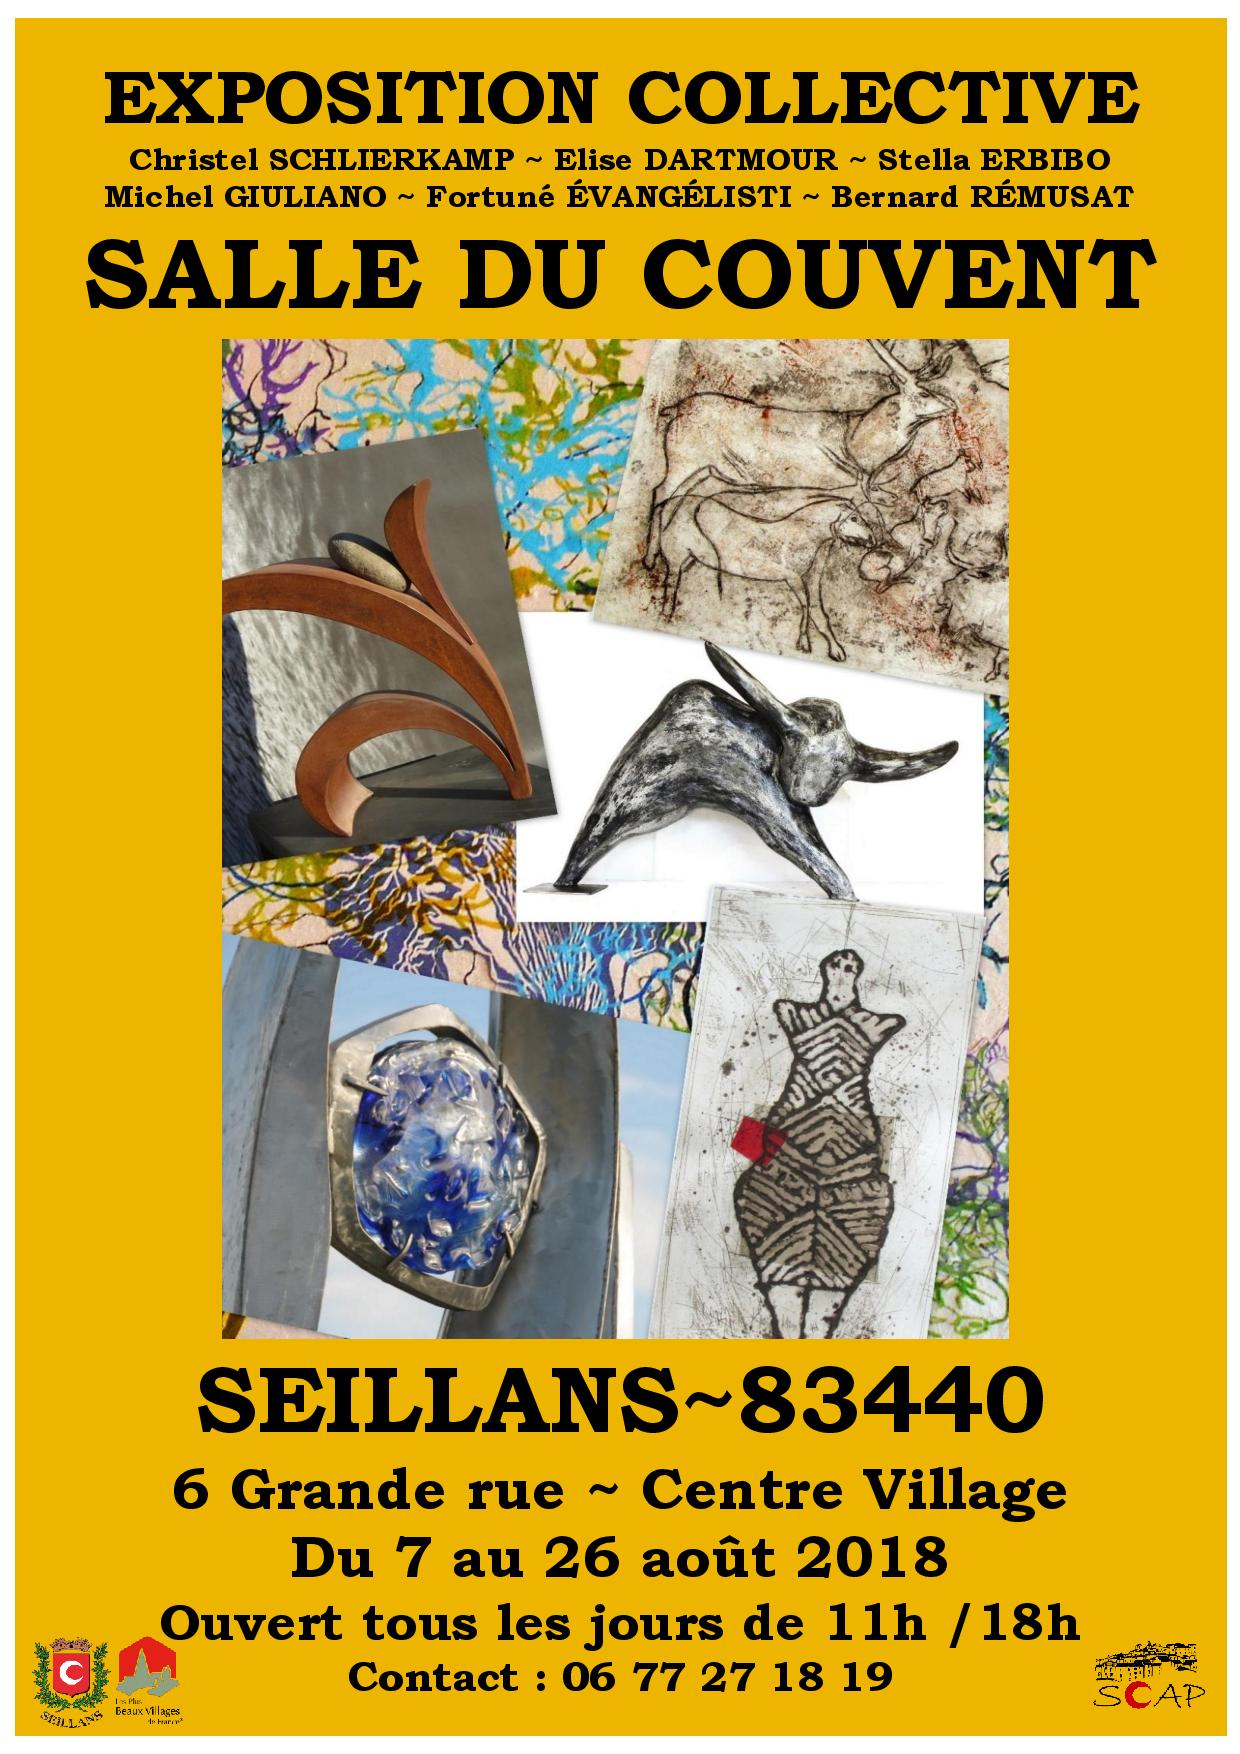 AFFICHE SEILLANS EXPO COLLECTIVE 3-page-